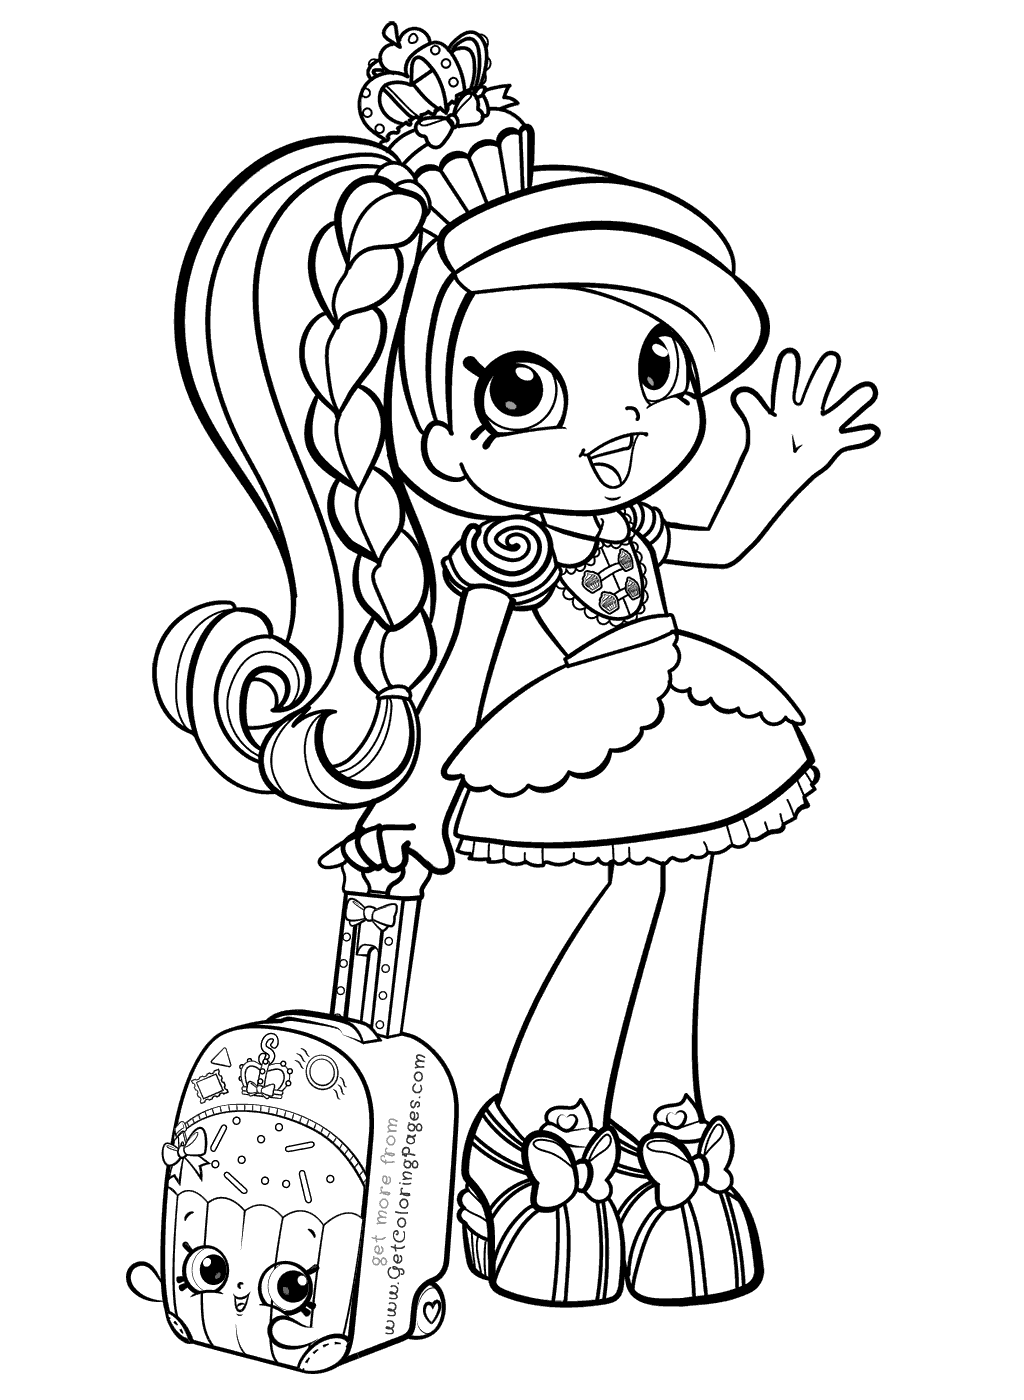 Shopkins Coloring Pages For Girls At Getcolorings